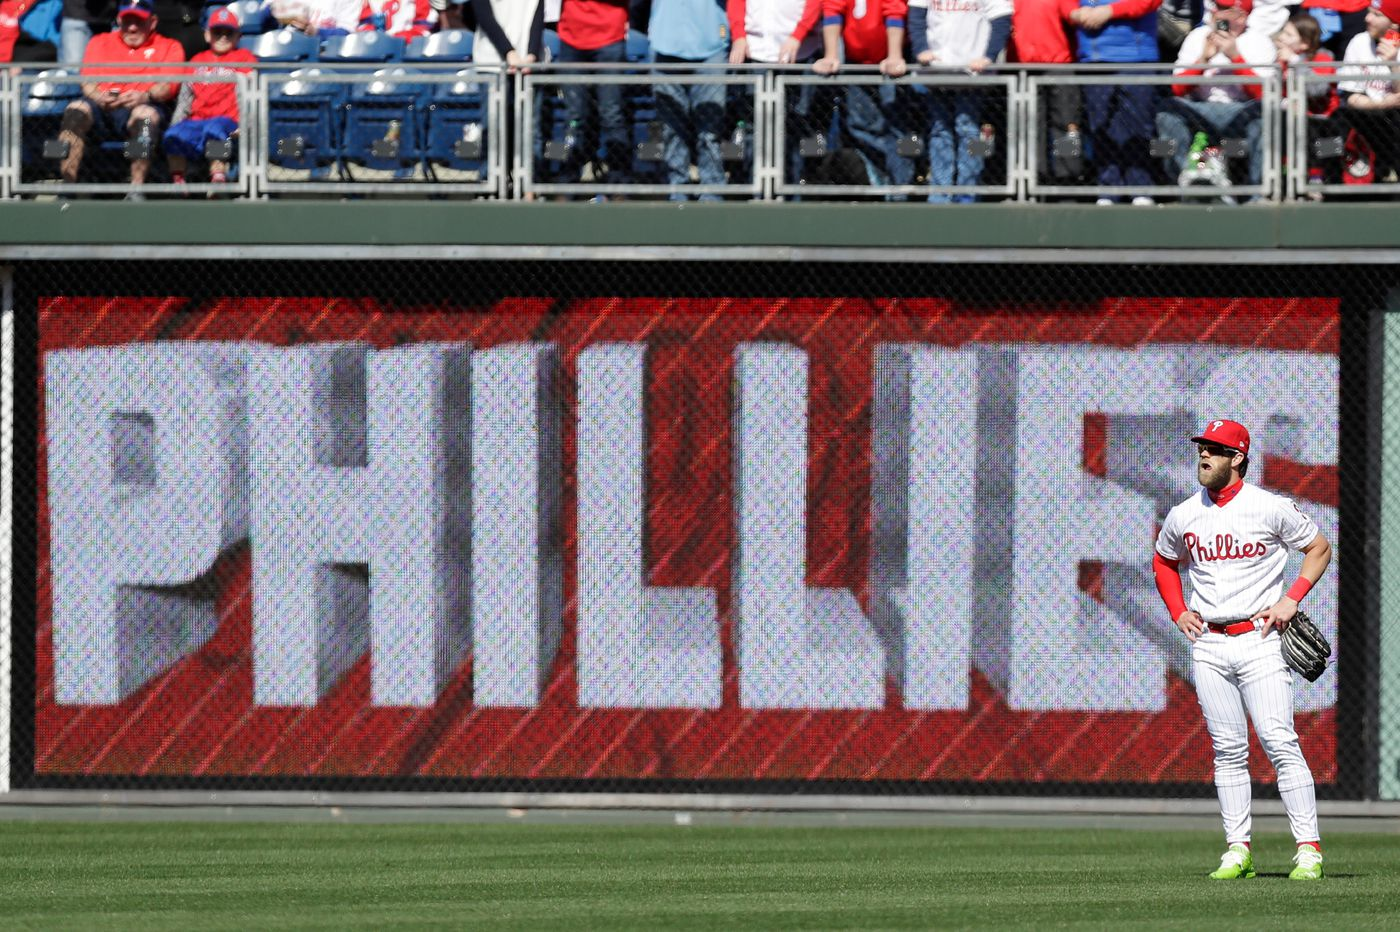 Phillies-Braves: Game time, how to watch and stream on FS1 and NBCSP+